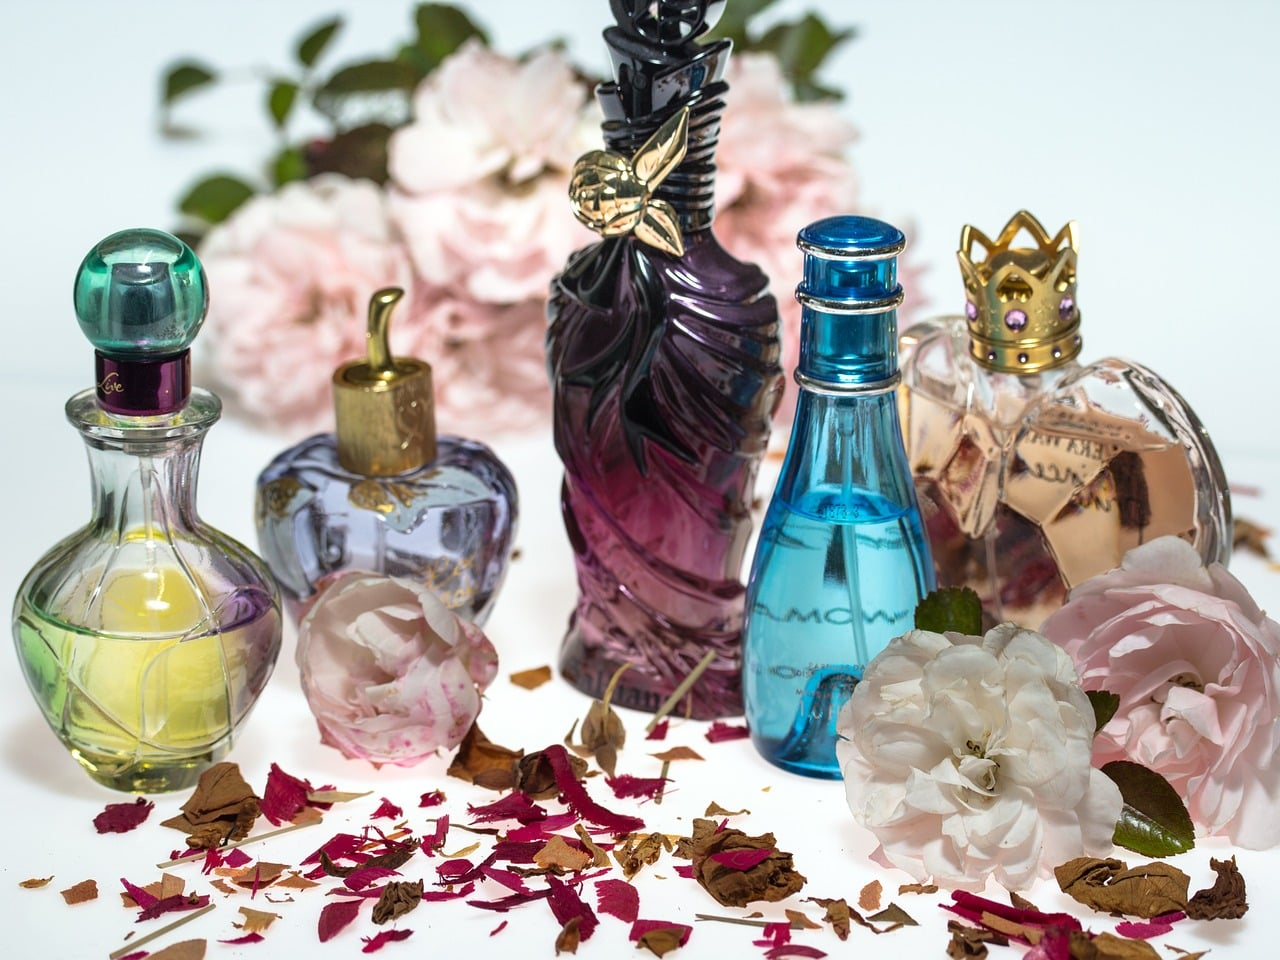 Shumukh The World's Most Expensive Perfume